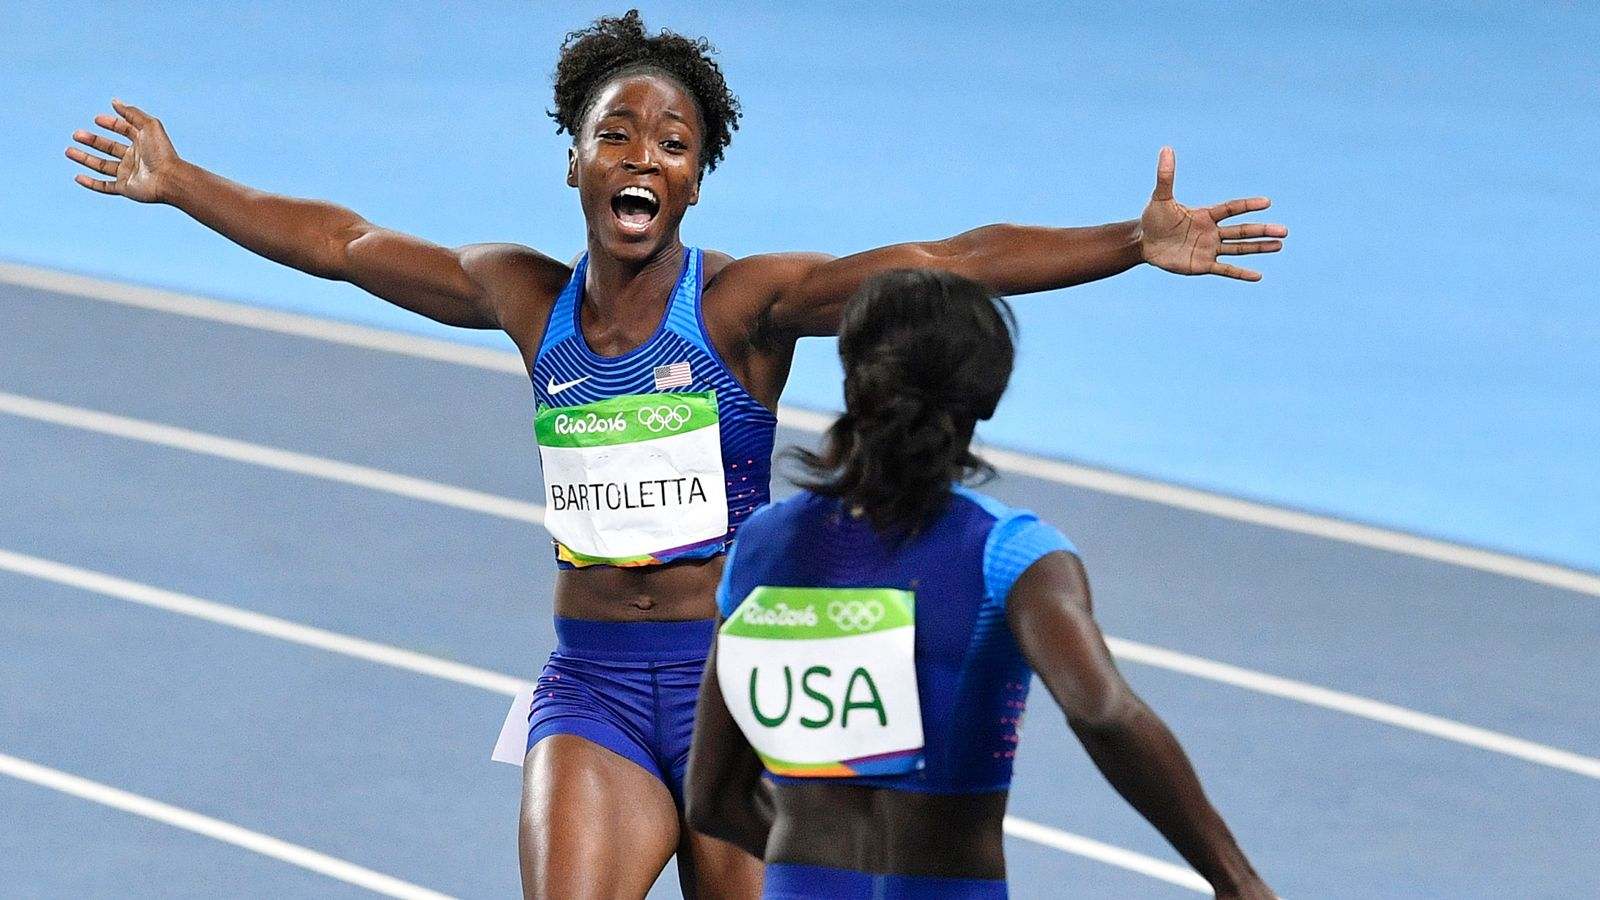 Bartoletta wins her second gold of the Rio Olympics